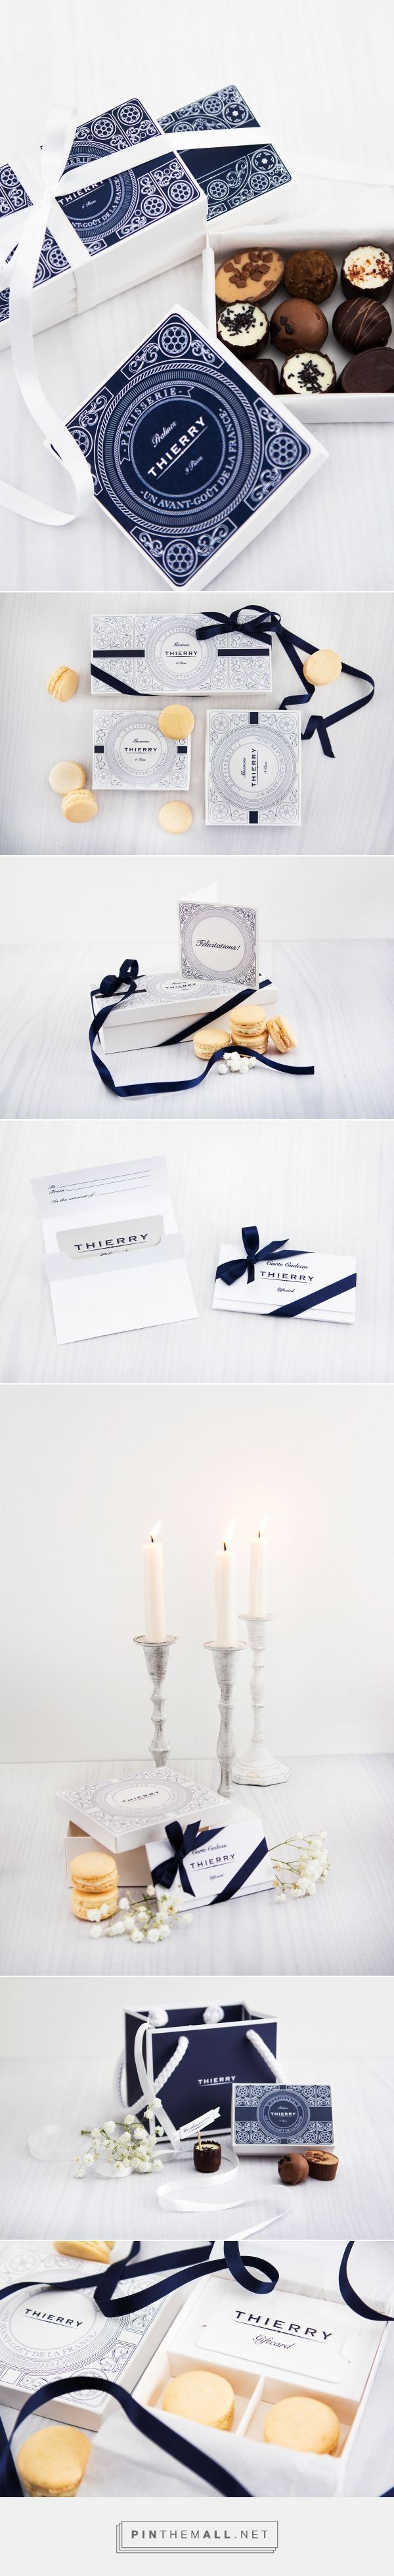 Branding, graphic design and packaging for Thierry on Behance by Linnea Djurberg Karlstad, Sweden curated by Packaging Diva PD. A new face for Thierry Chocolaterie, to get them to embrace the French culture and to bring the company new life.